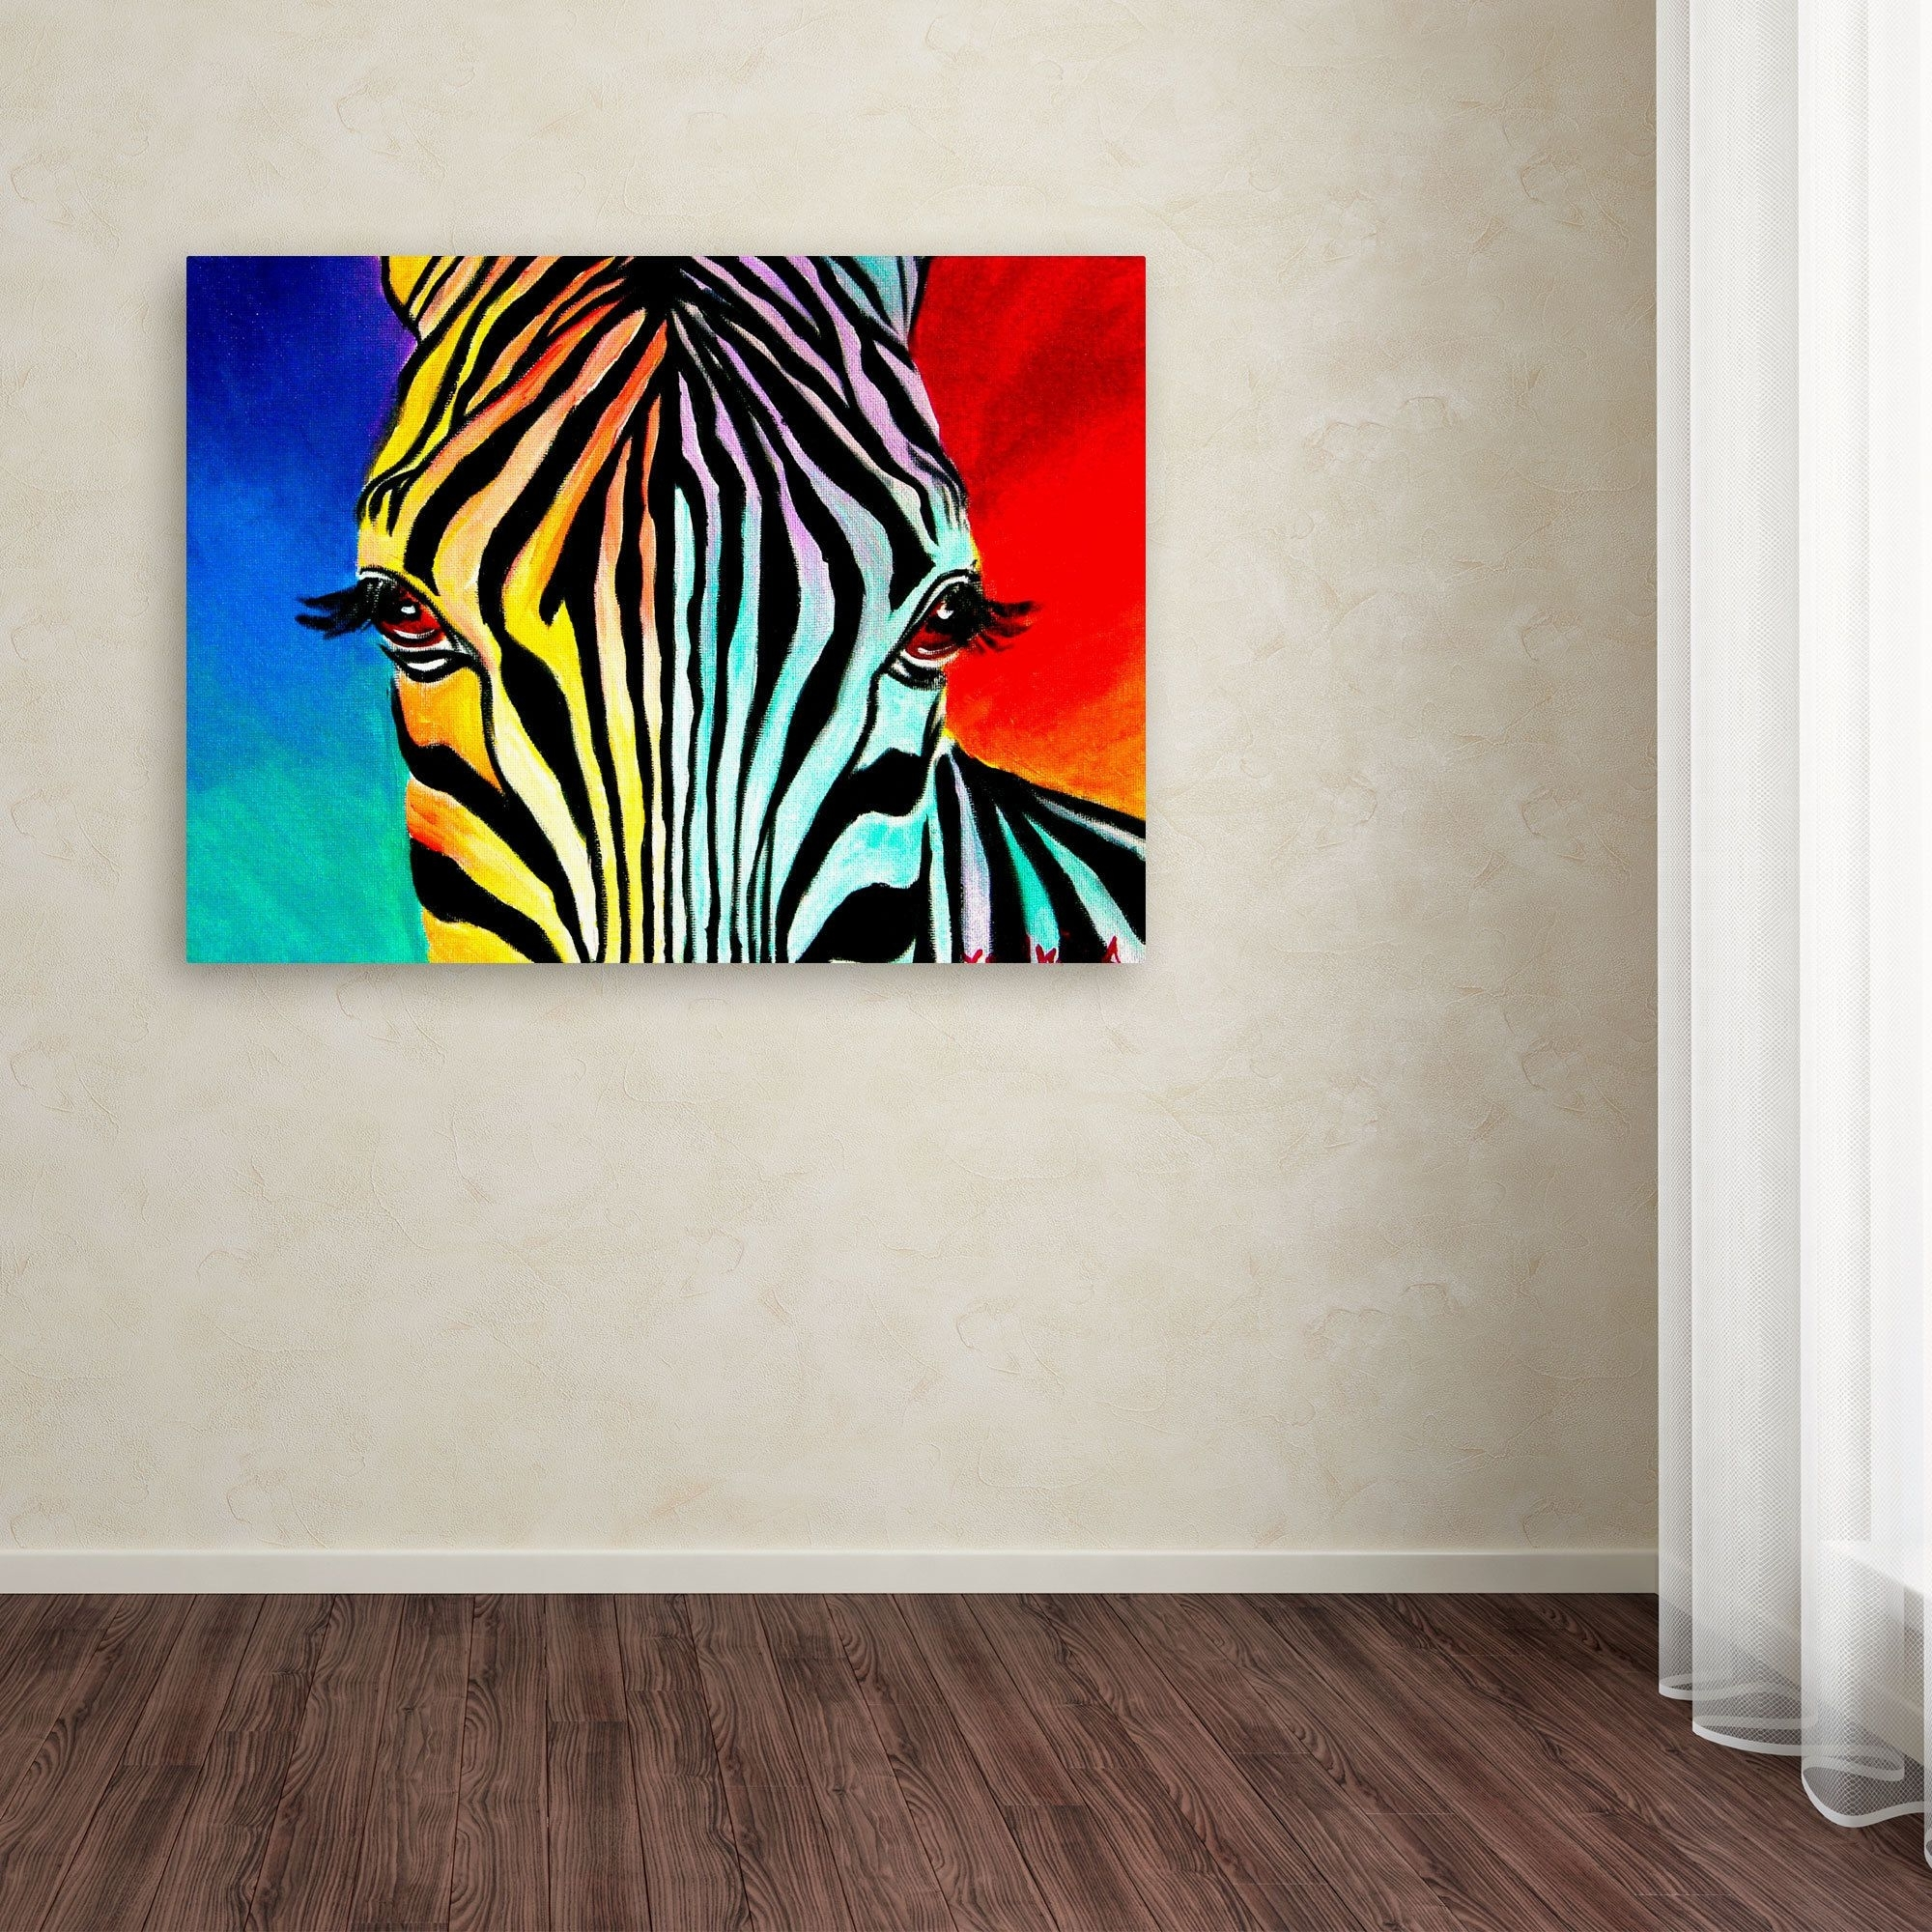 Dawgart 'zebra' Canvas Art (View 3 of 15)